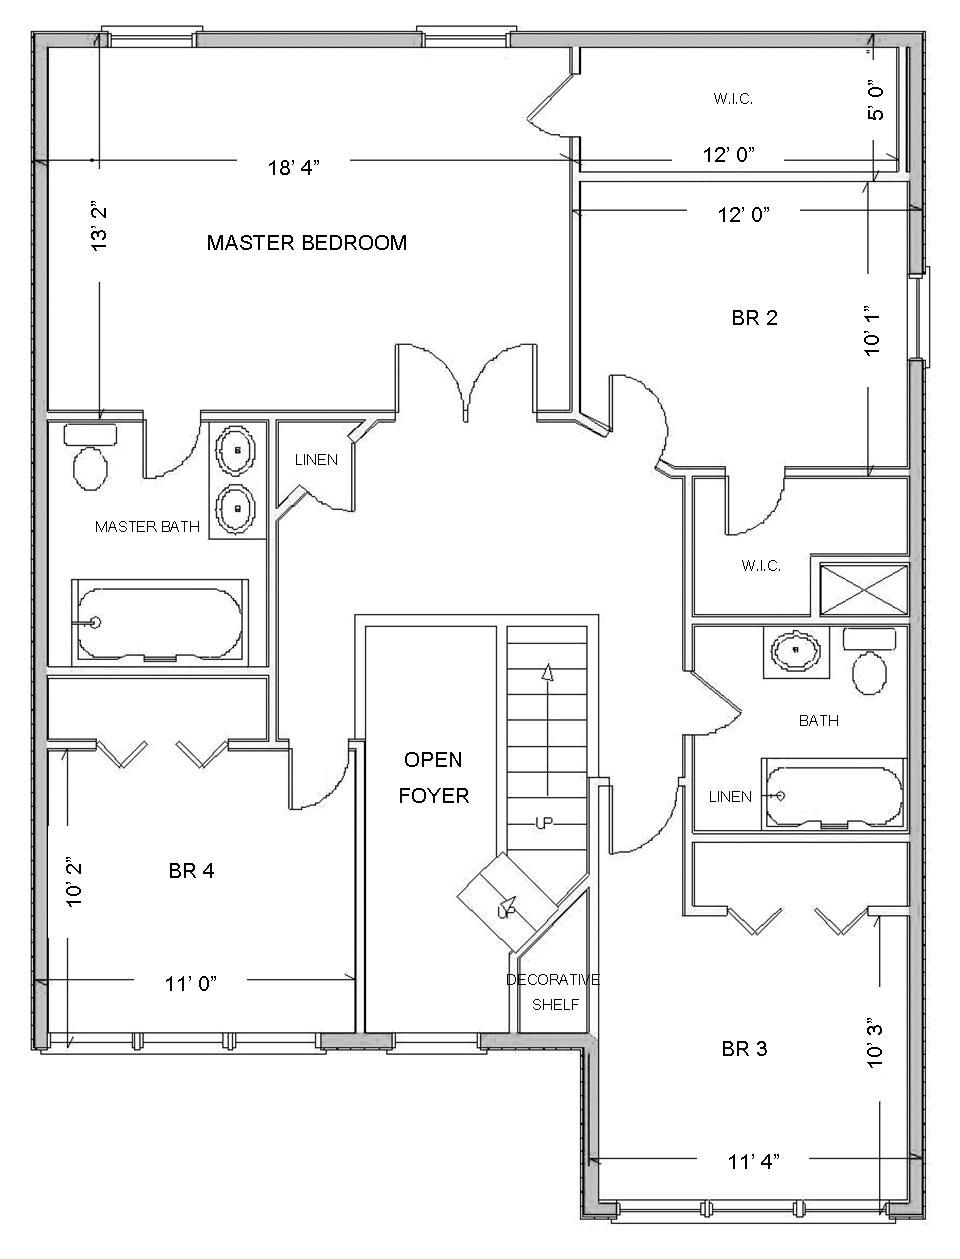 Delightful If You Want To Make A Smart Draw Floor Plan For You Home Floor Design,